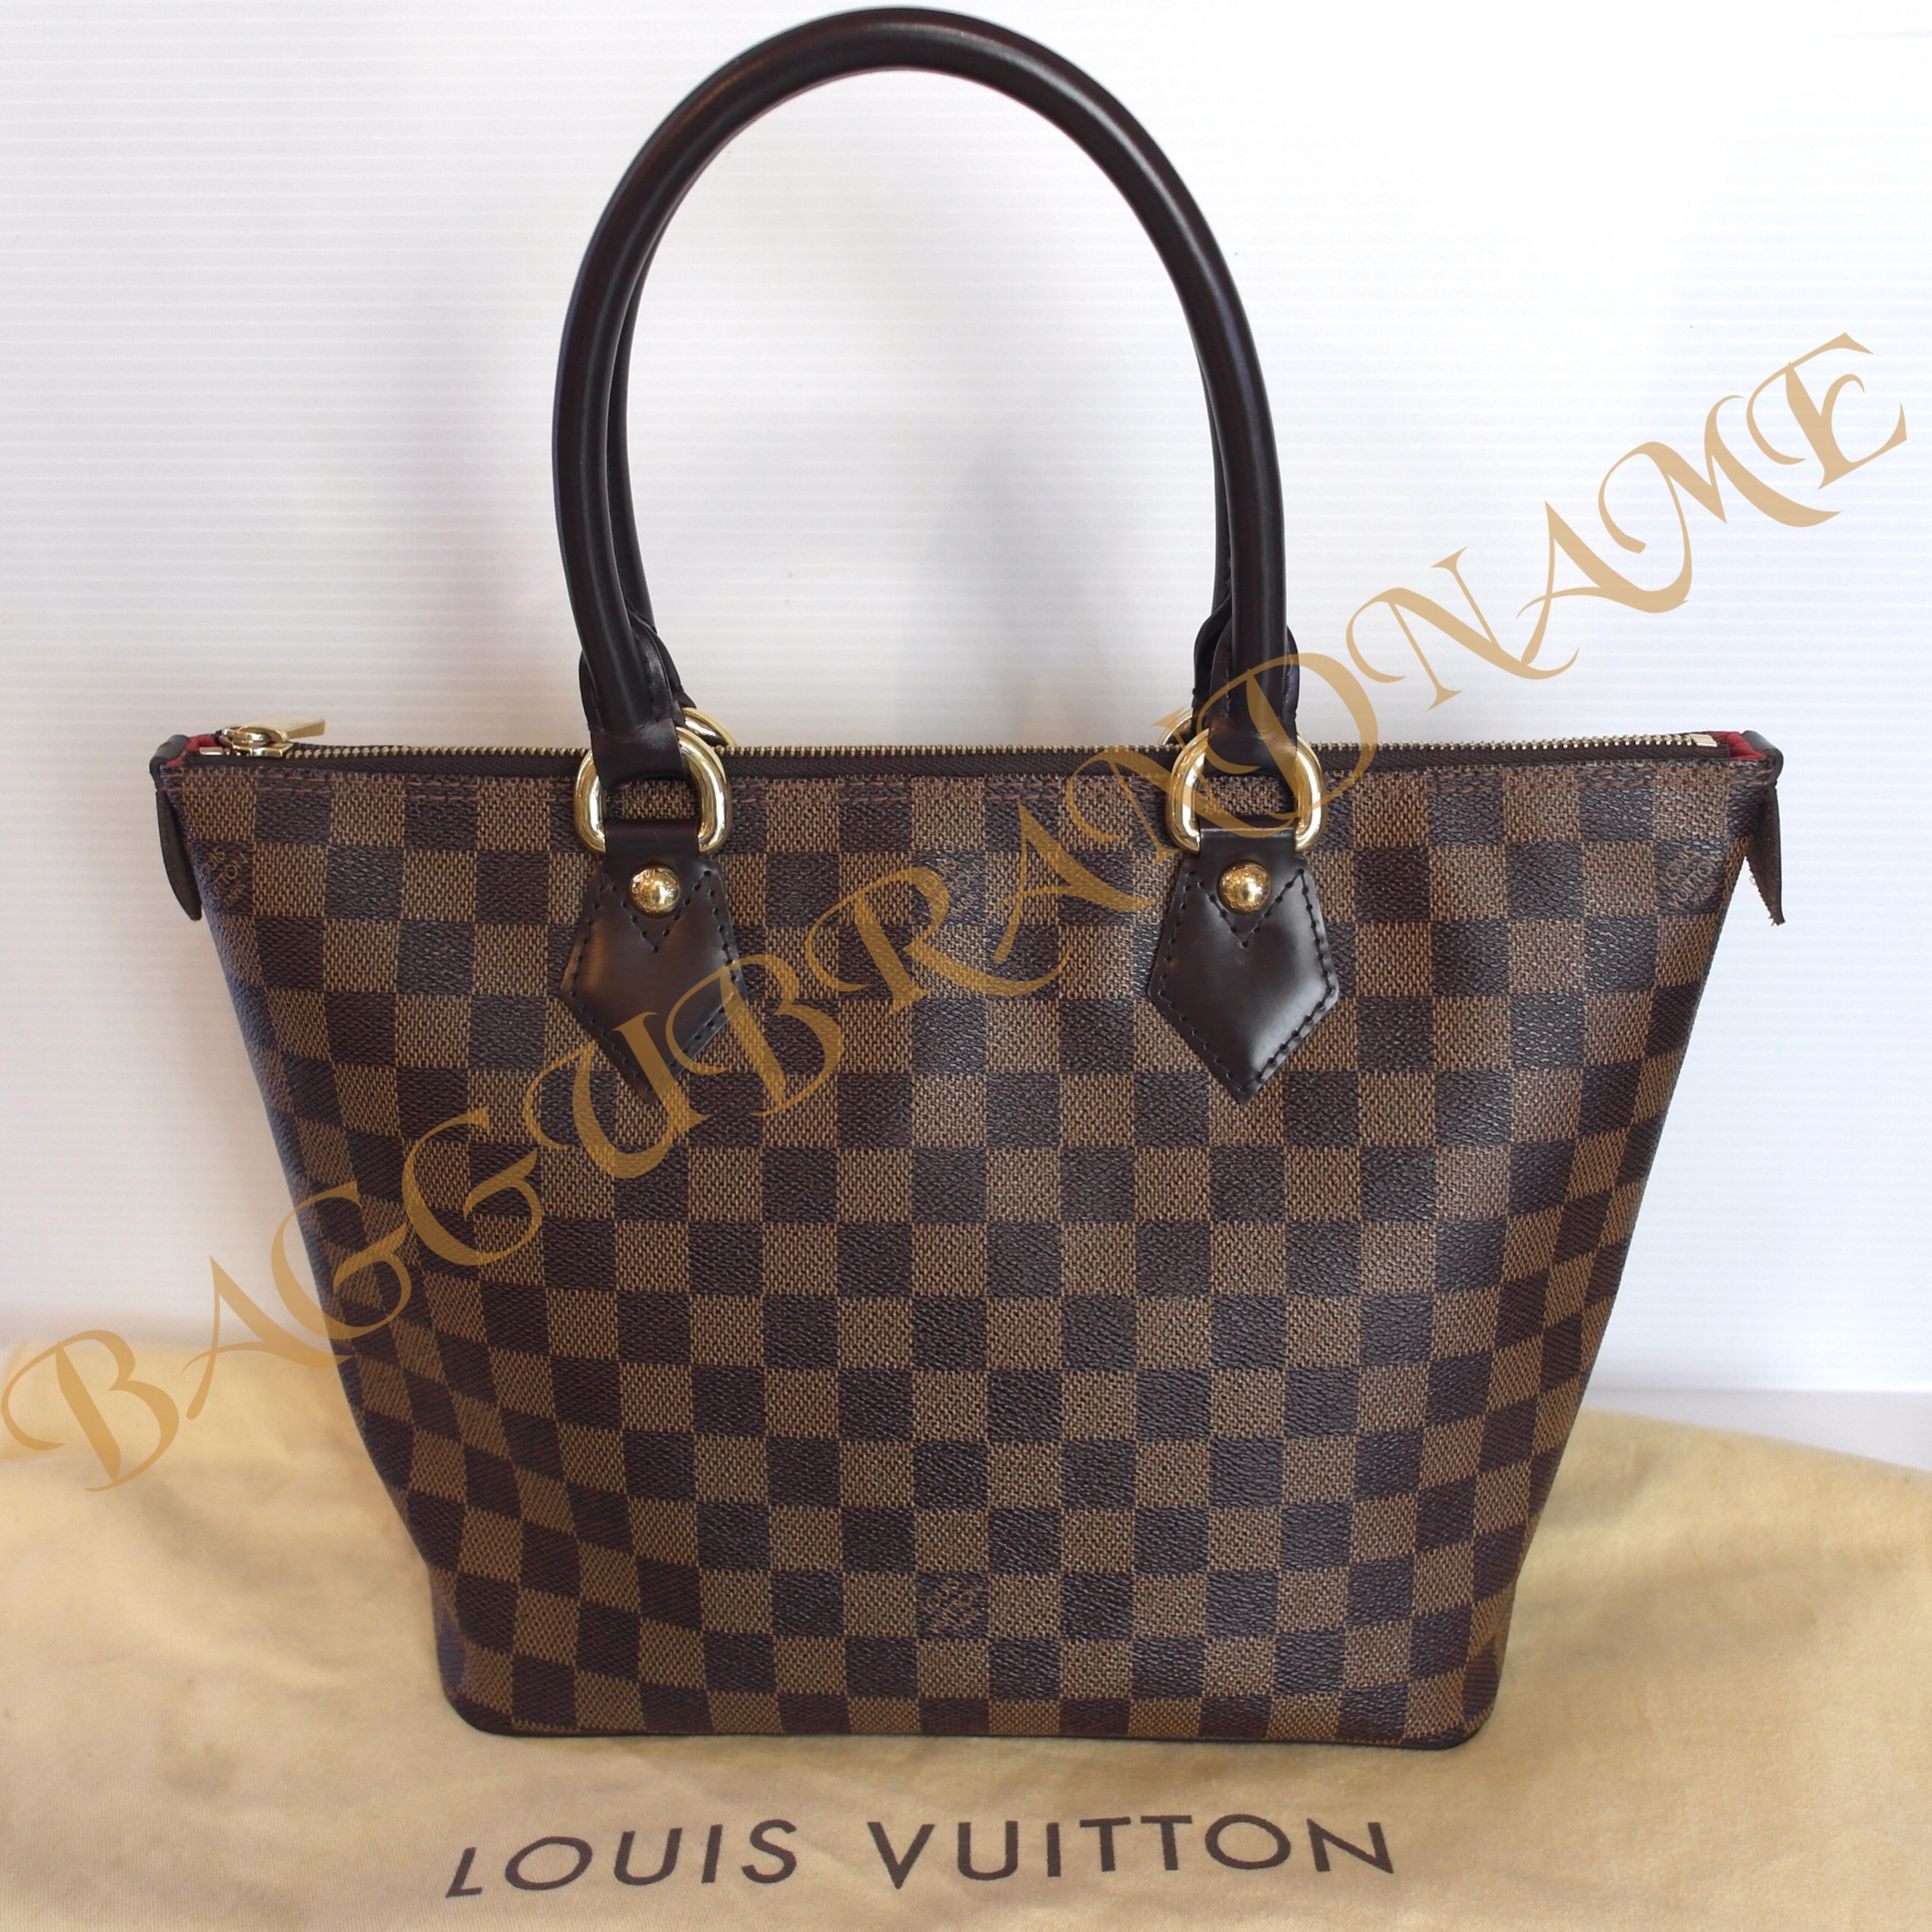 (SOLD OUT)LOUISVUITTON saleya pm damier